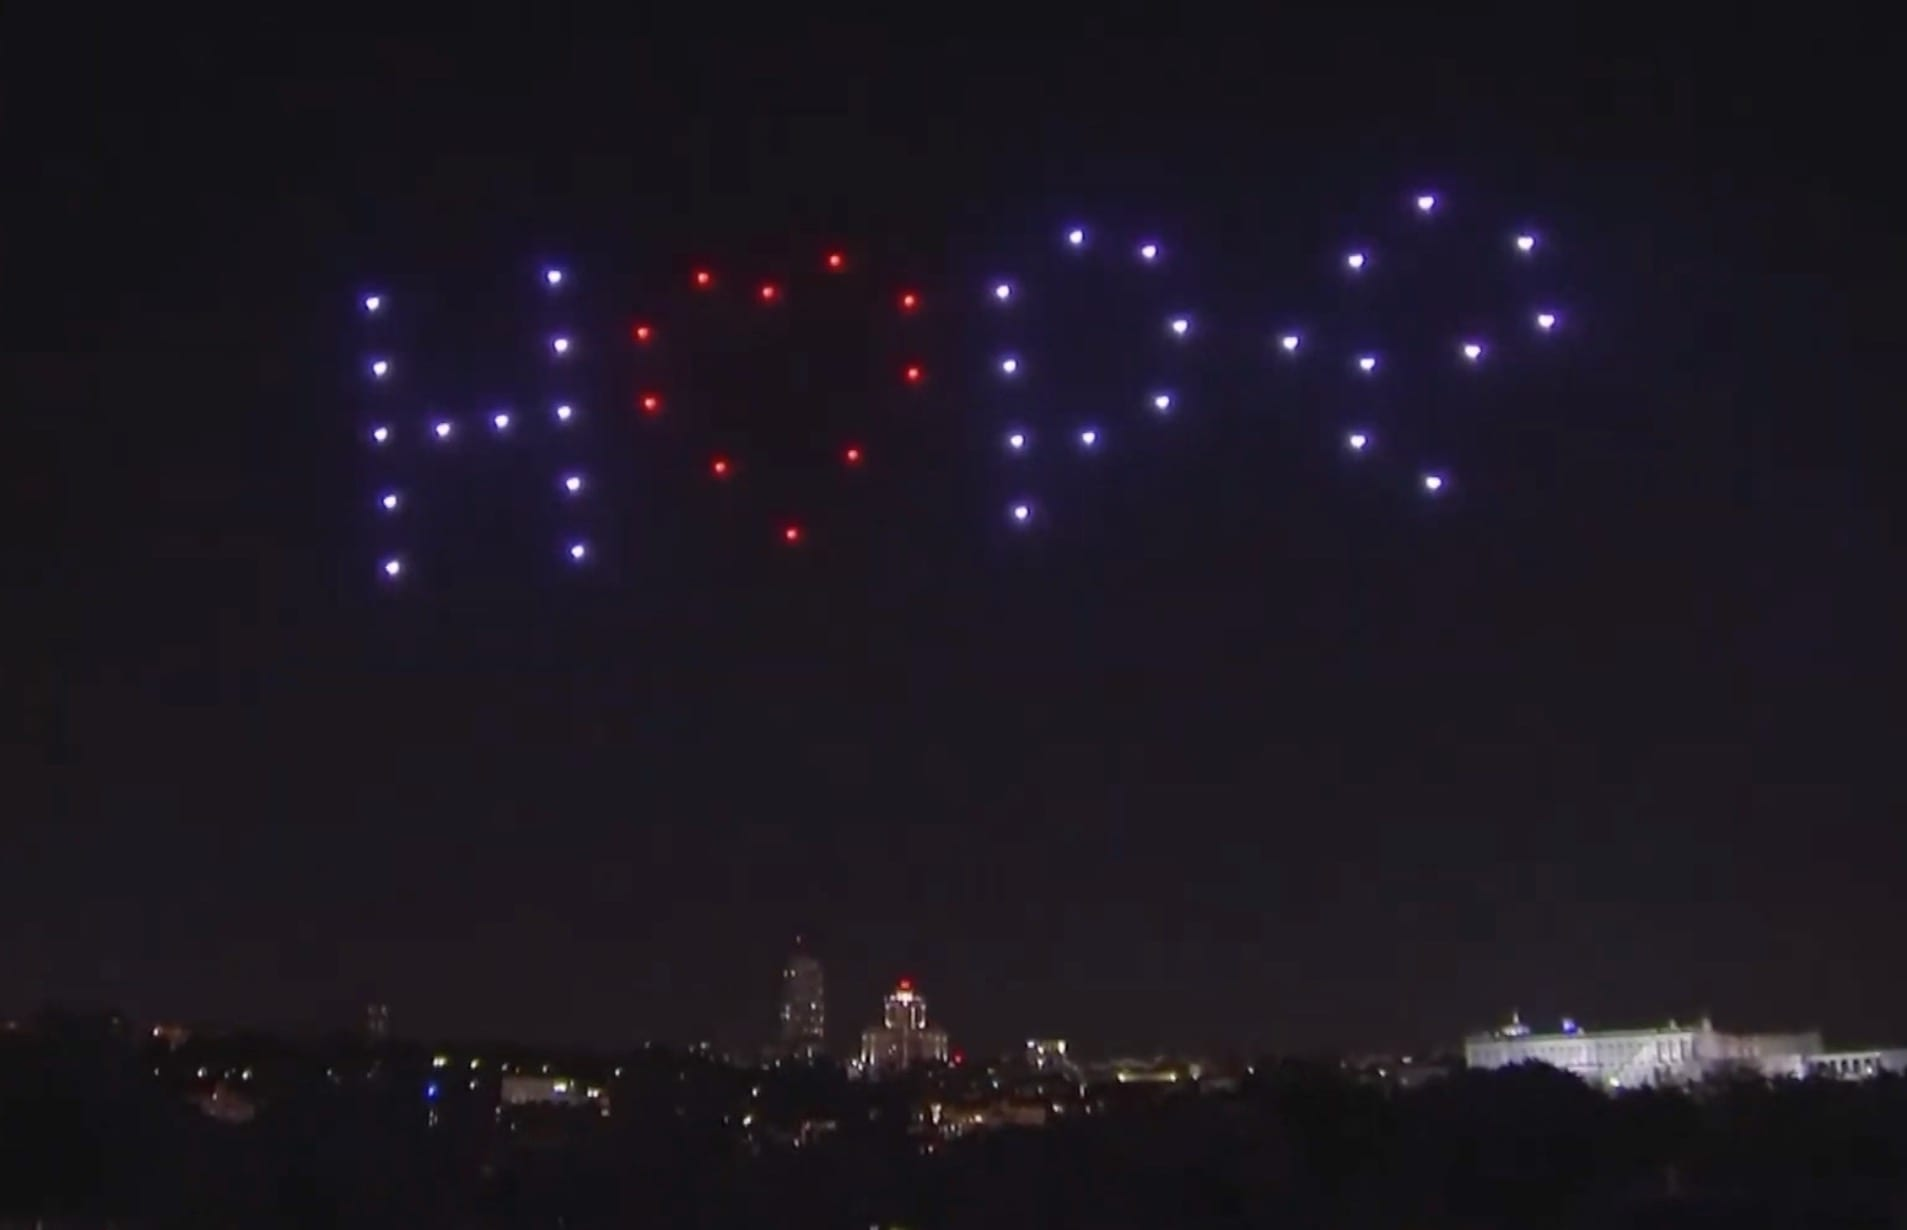 Drone light show over Madrid to pay tribute to coronavirus victims and emergency services